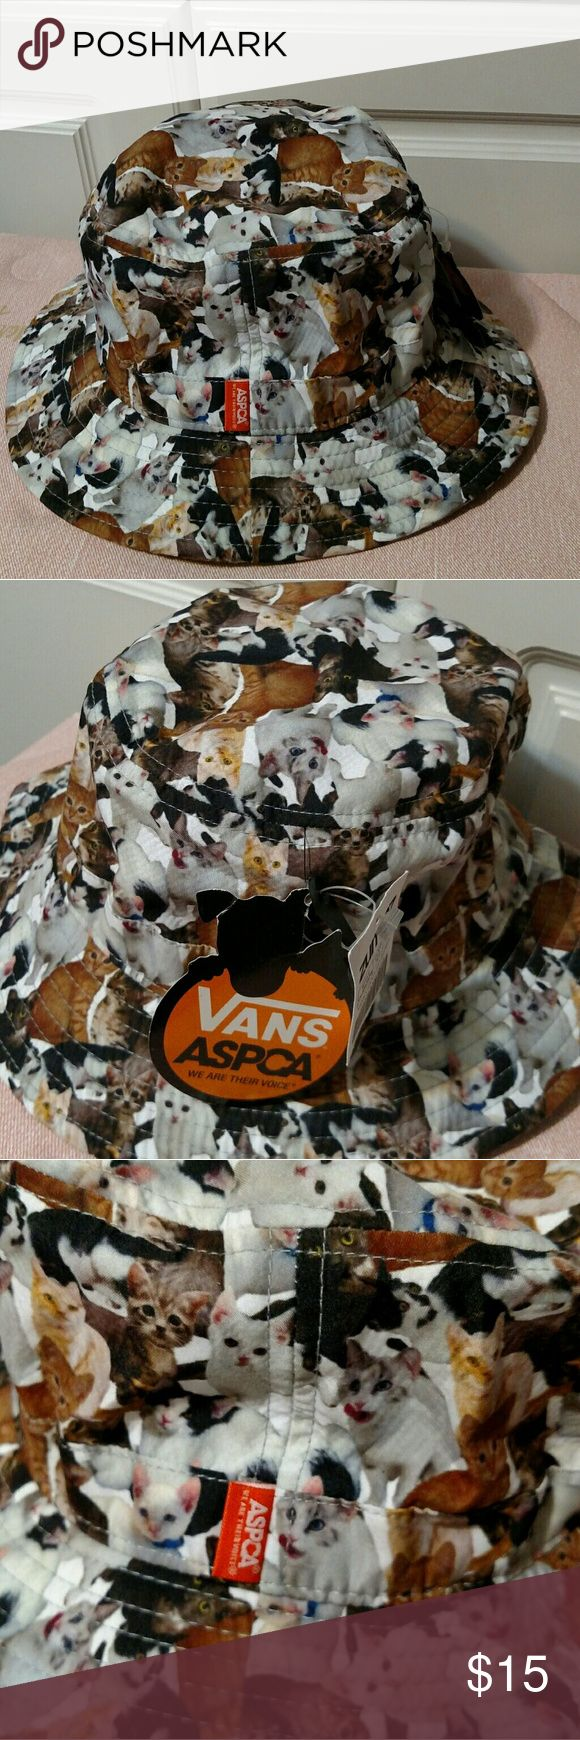 Vans x ASPCA Cat bucket Hat Brand New Vans USA animal humane society cats bucket.  Perfect for sunny hot day. Vans Accessories Hats